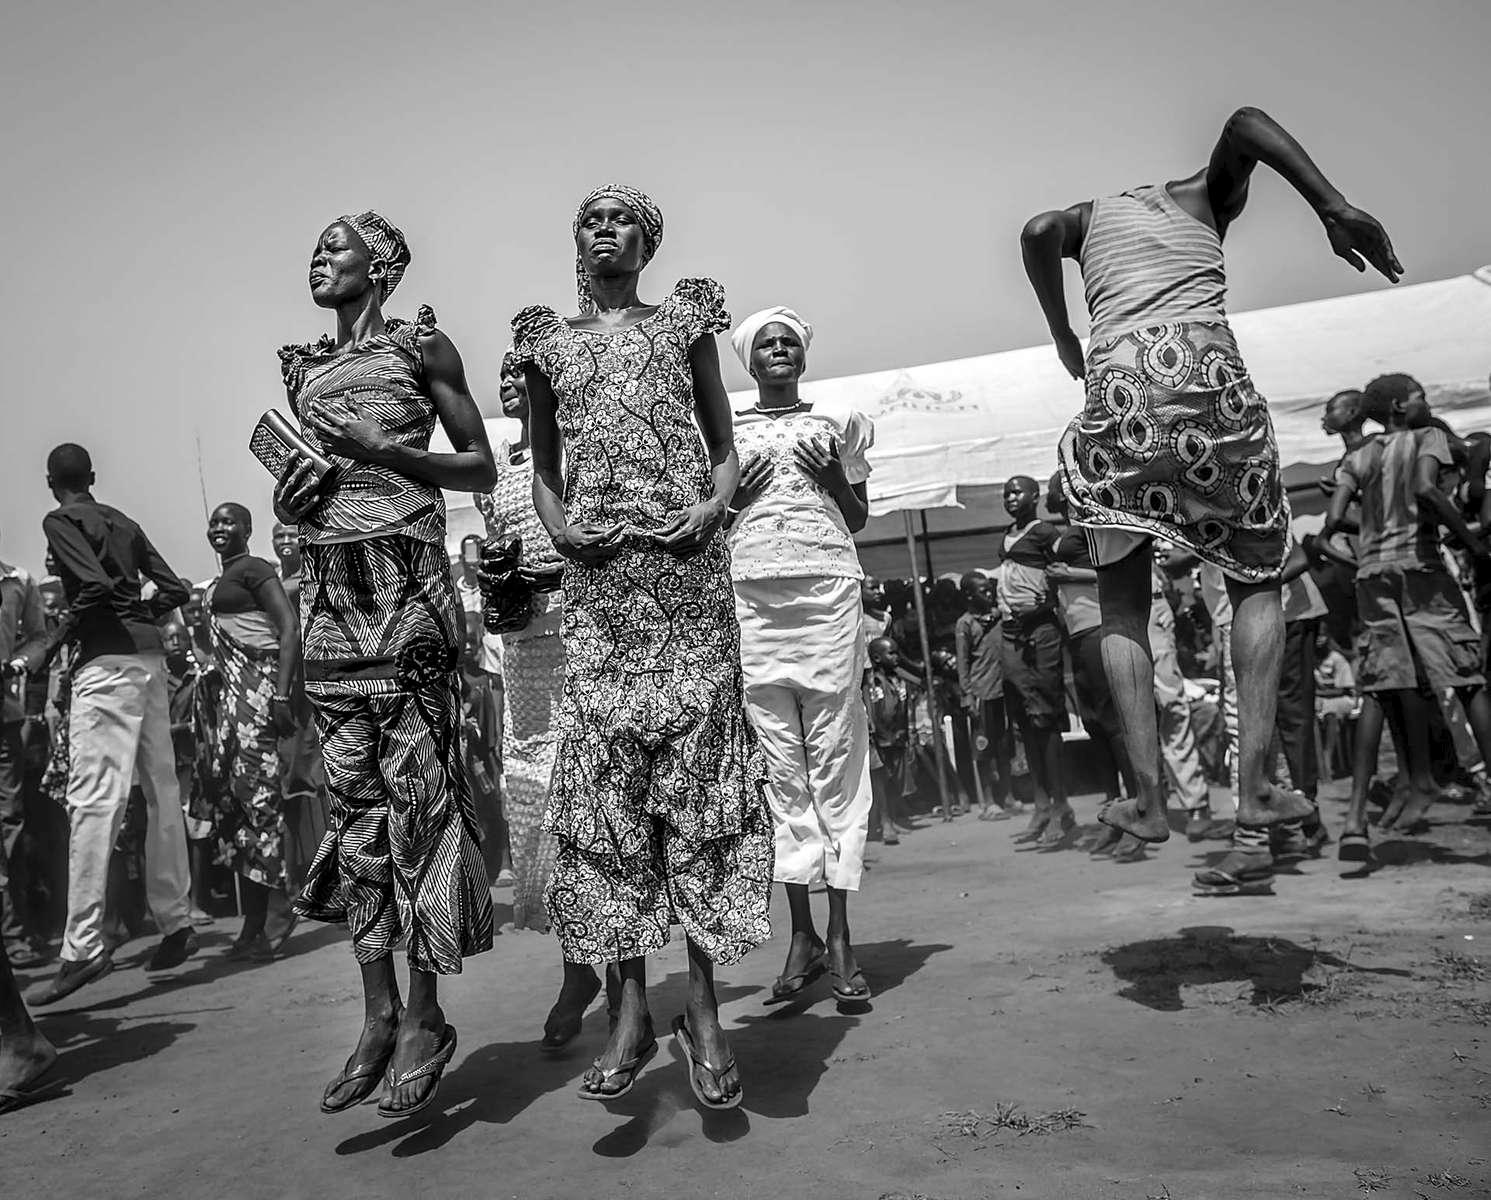 Refugees engage in a tribal dance at Nyumanzi Transit Center in Adjumani district of Uganda on August 29, 2016.